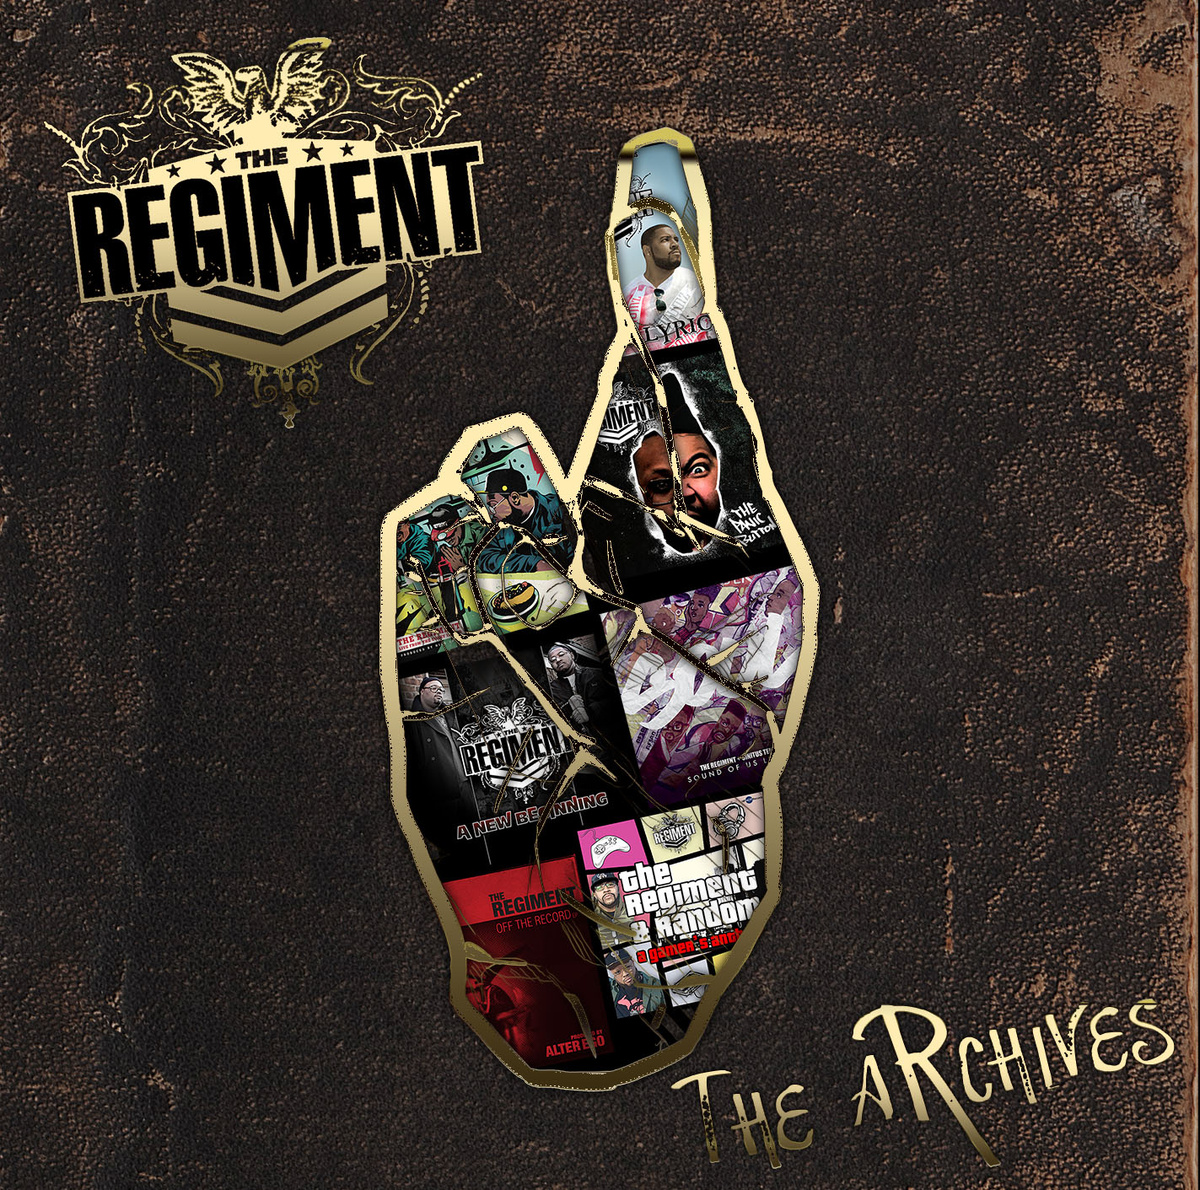 The_regiment_presenta_the_archives